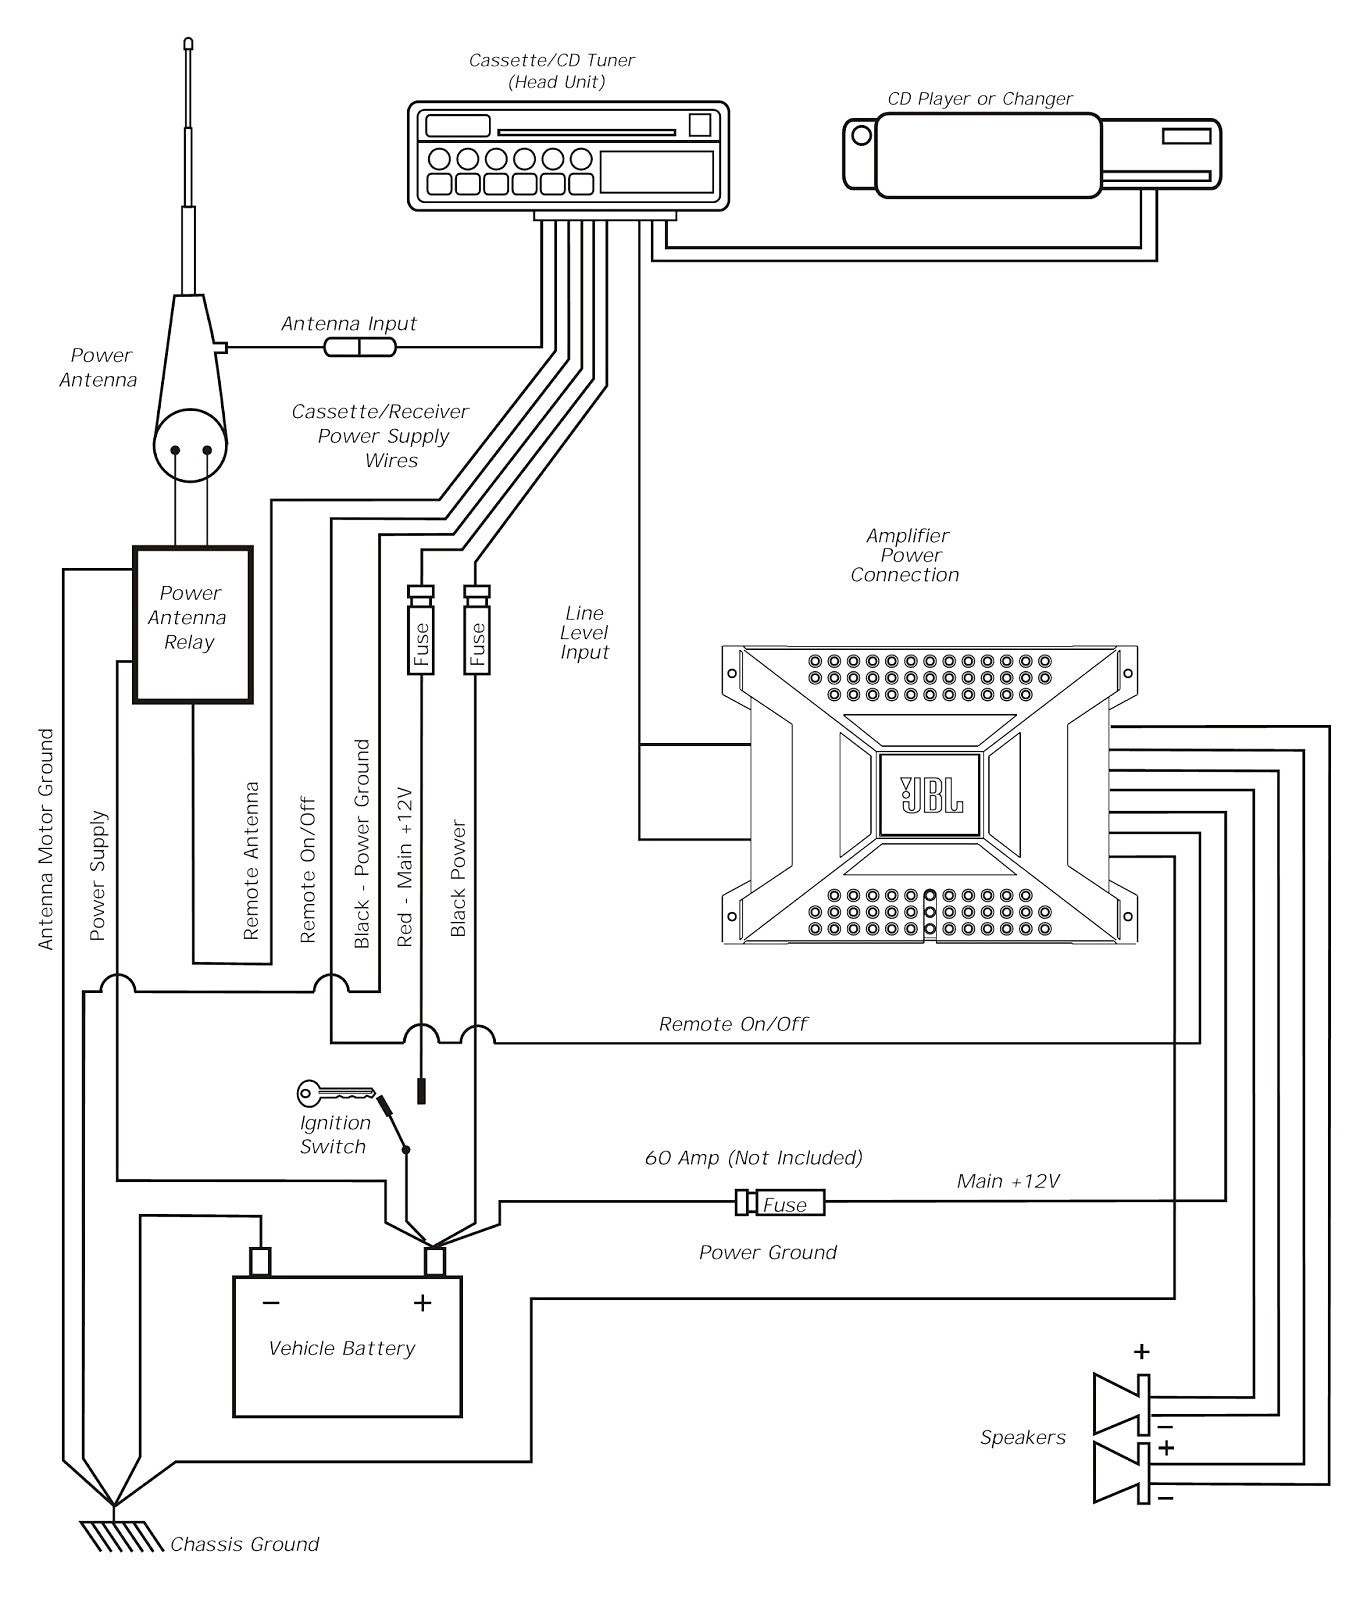 2000 Chevy Malibu Wiring Diagram Fh X700bt Wiring Diagram Wiring Diagram Inside Of 2000 Chevy Malibu Wiring Diagram 2006 Chevy Silverado Wiring Diagram